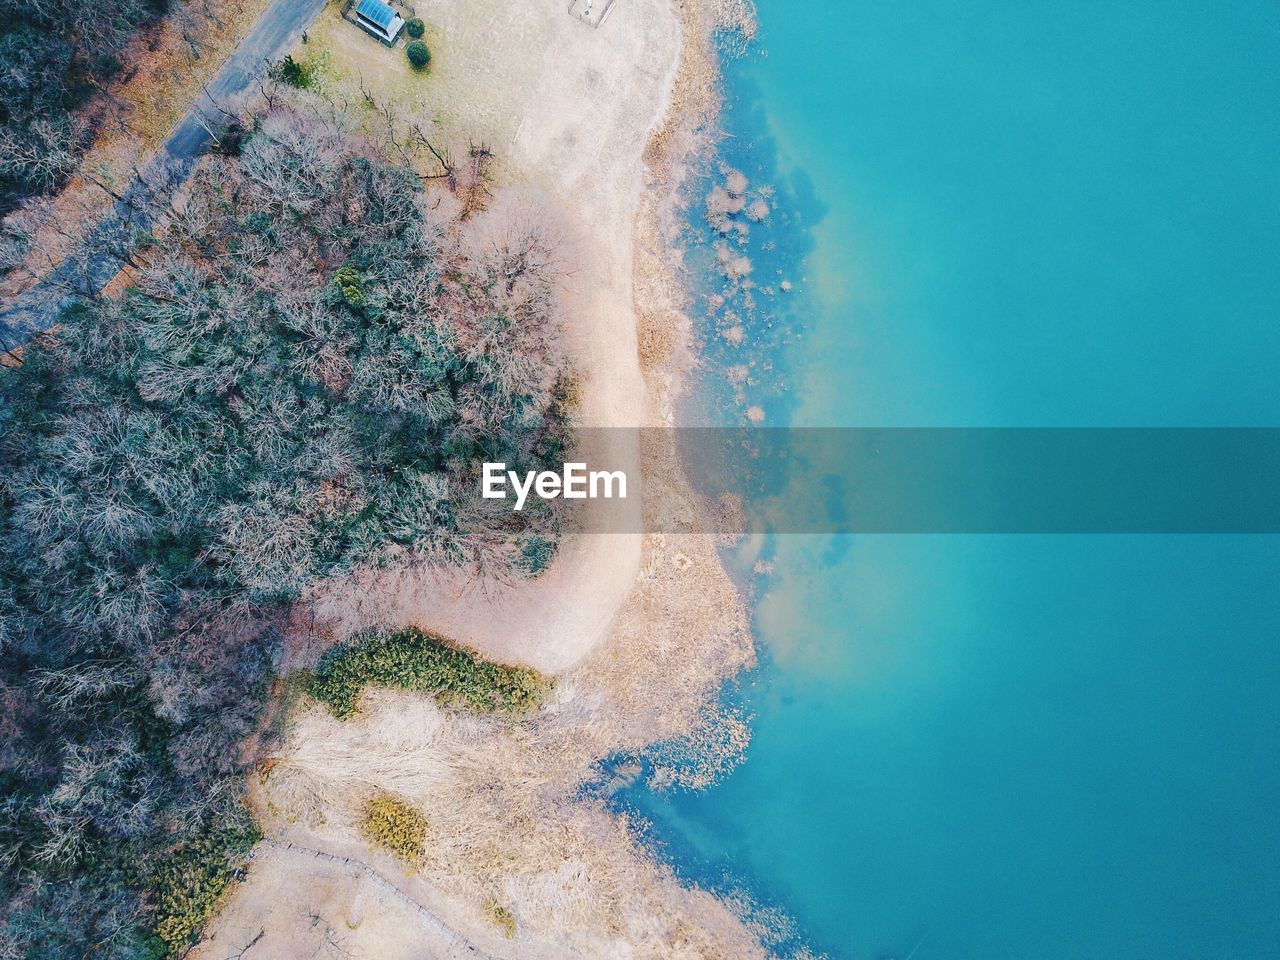 High angle view of trees at beach by blue sea